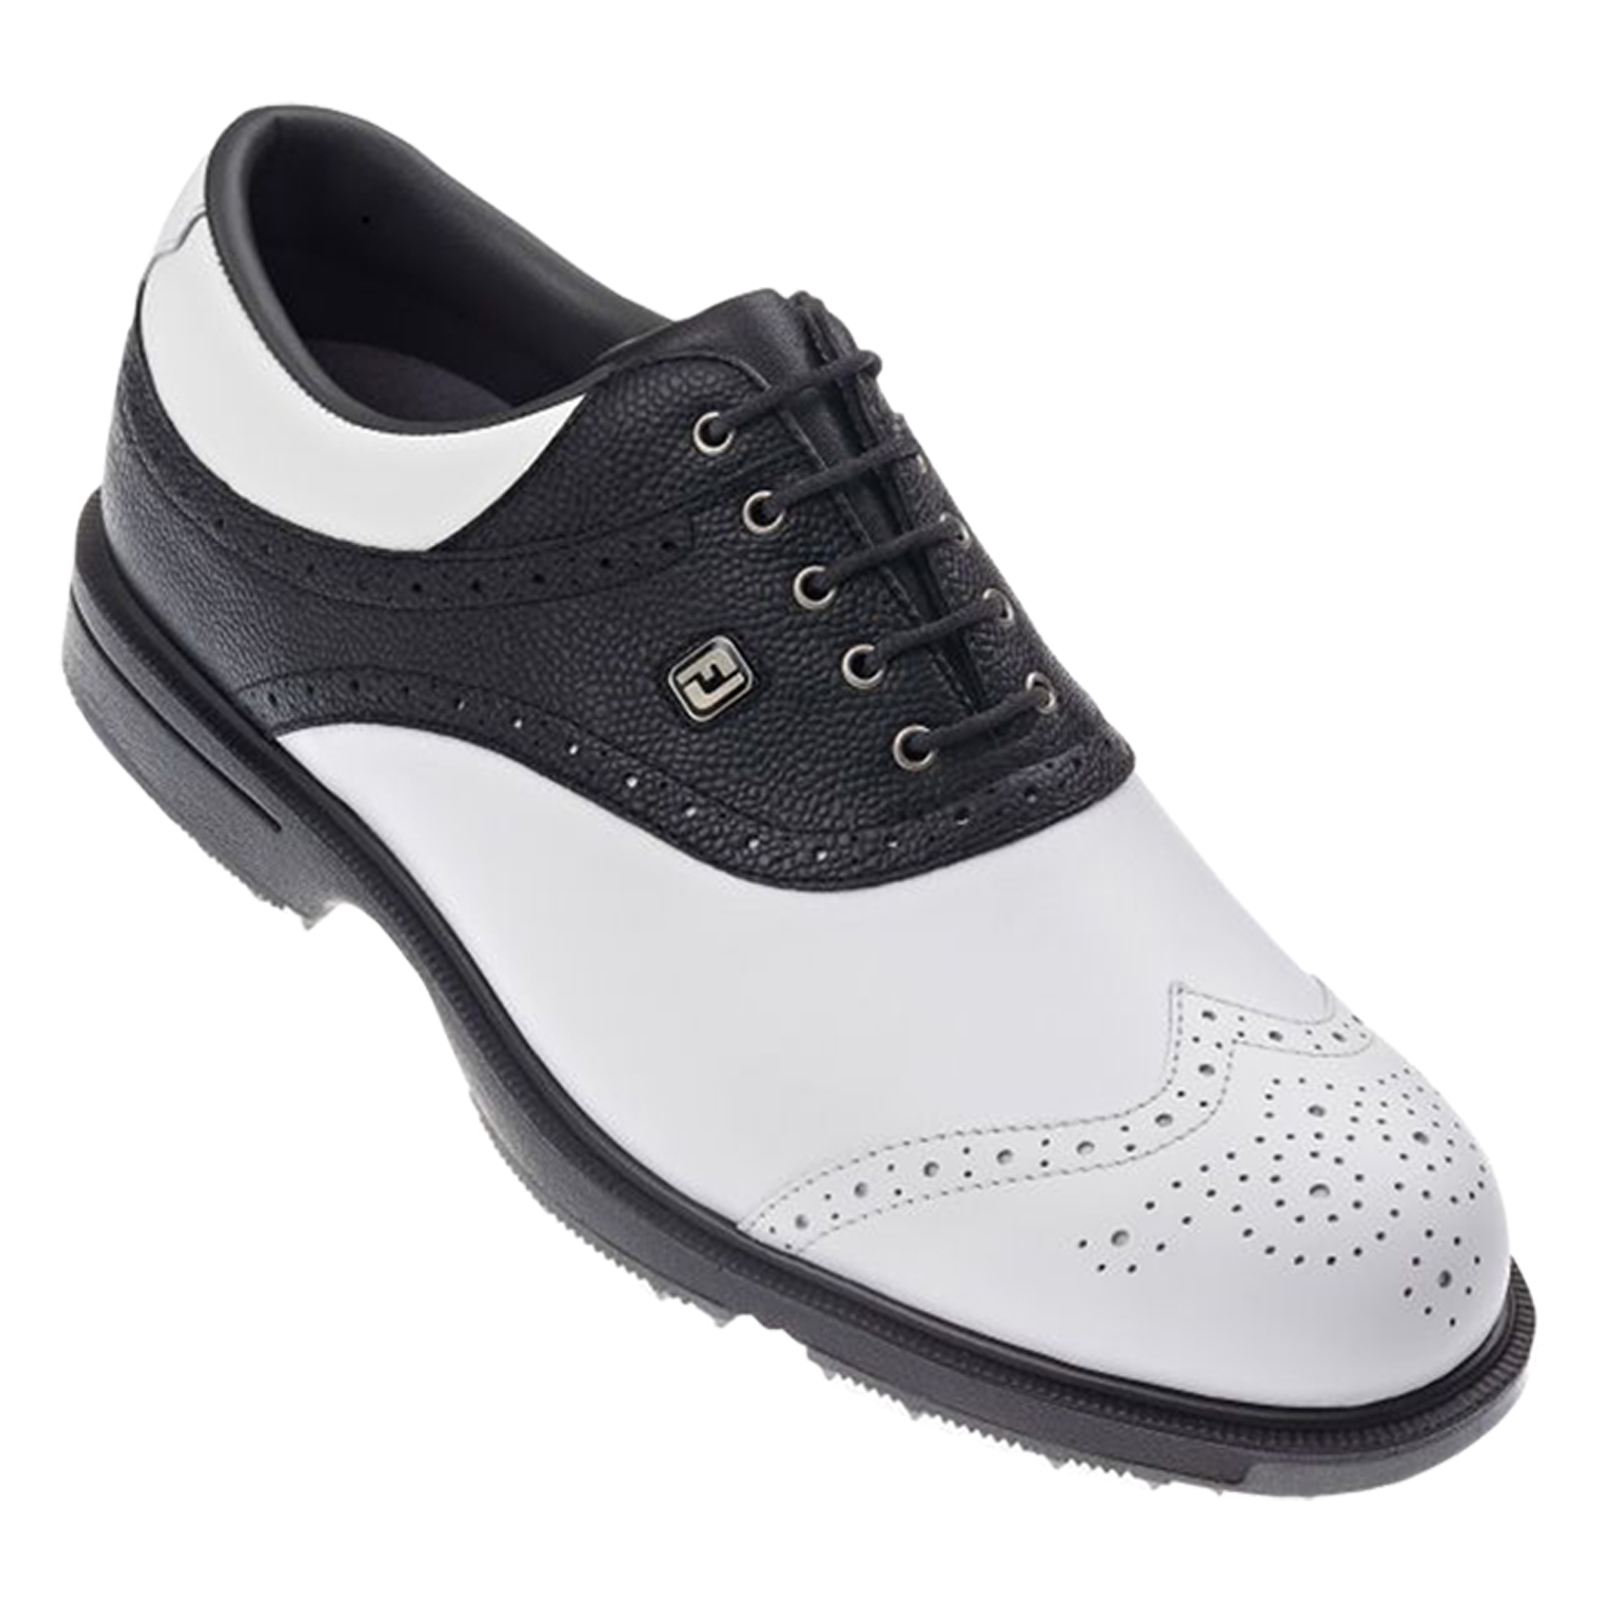 Golf Shoes Aql Waterproof Size